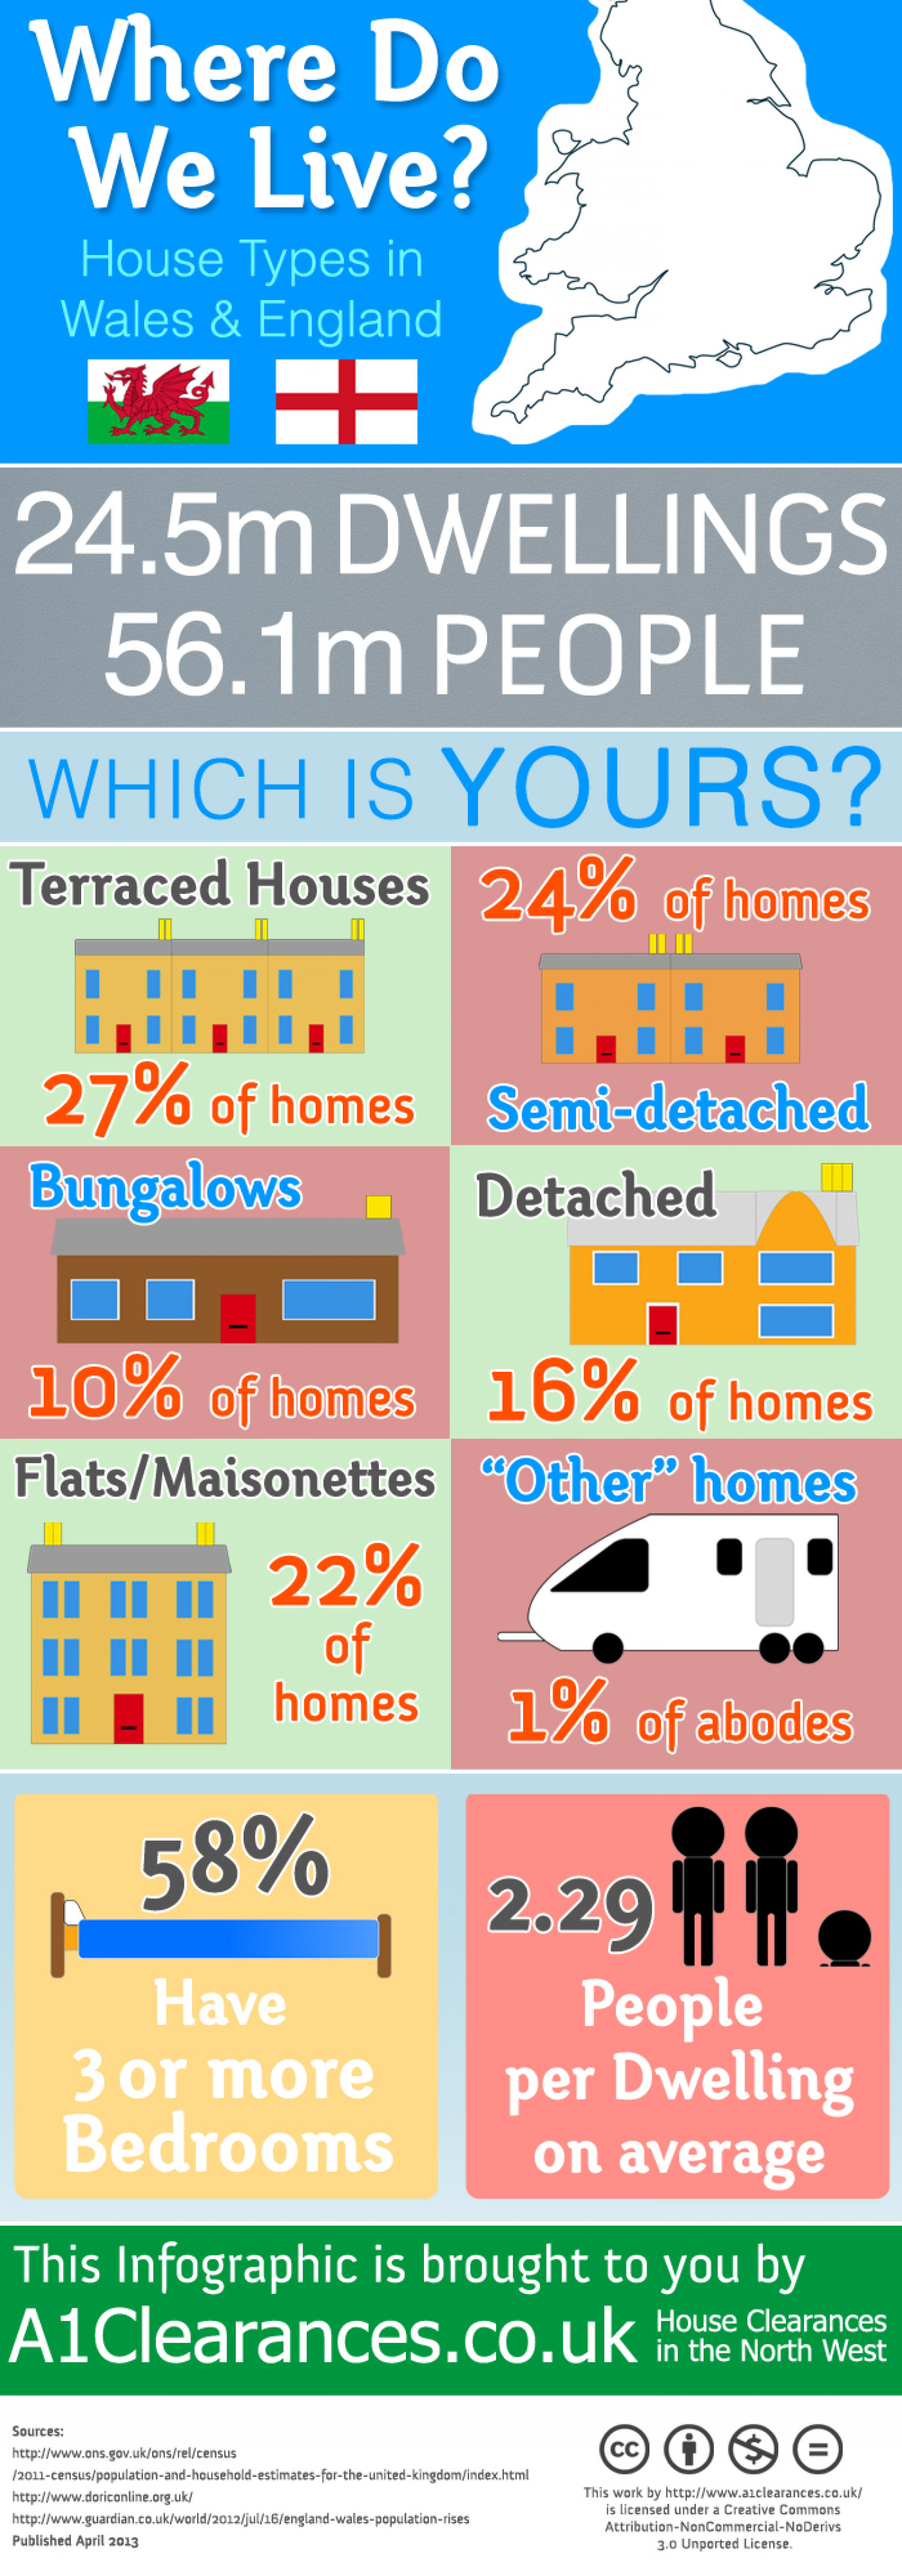 Where Do We Live? House Types In England & Wales Infographic